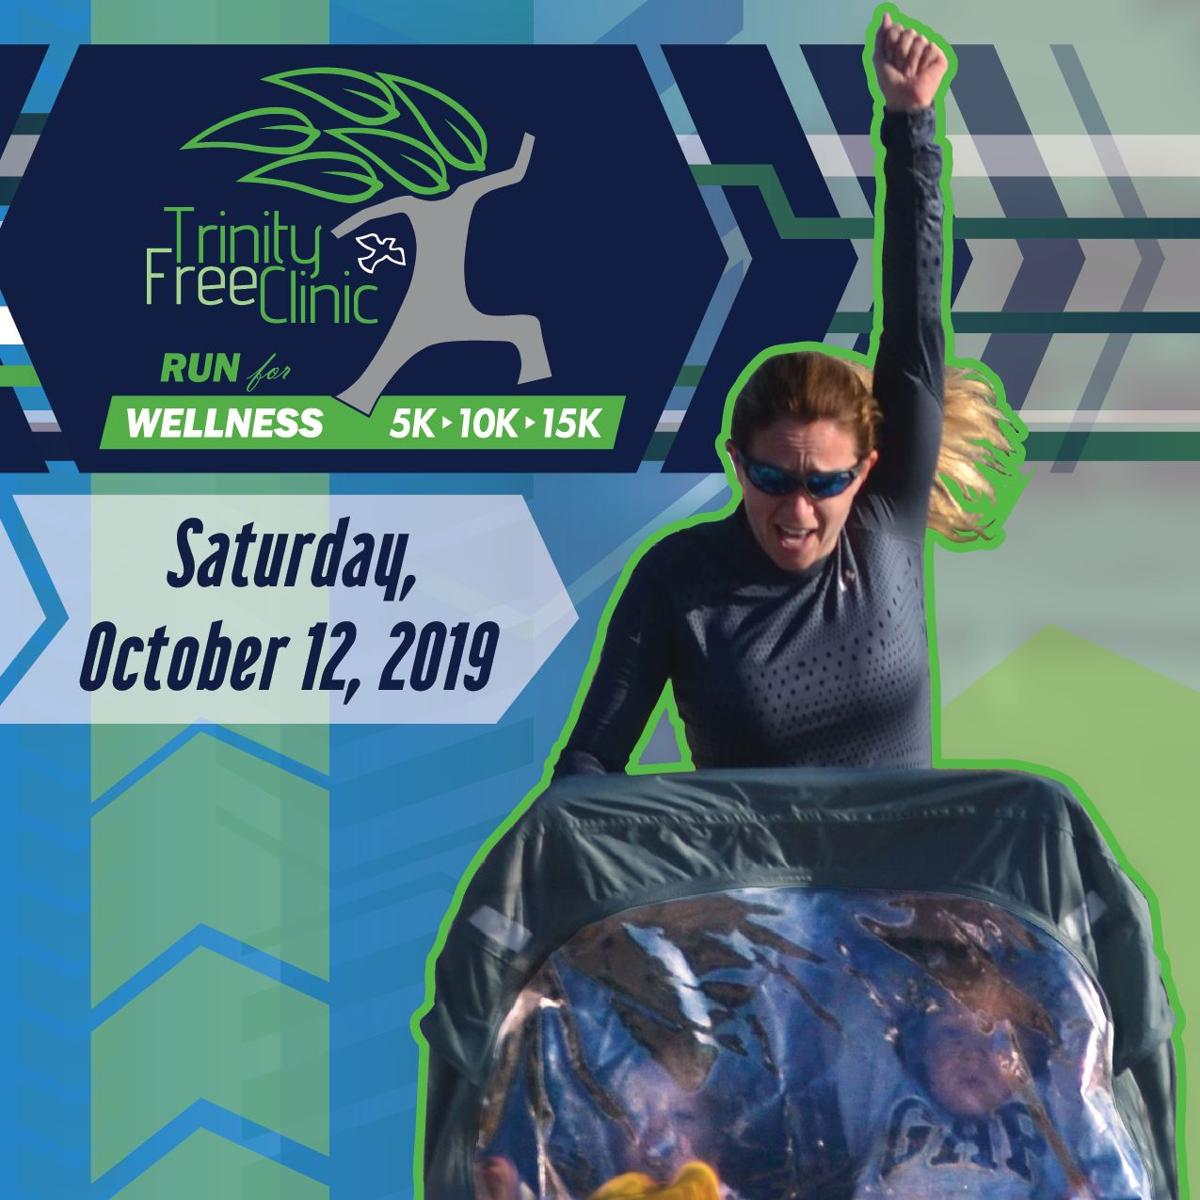 Join us for the Trinity Free Clinic Run for Wellness!